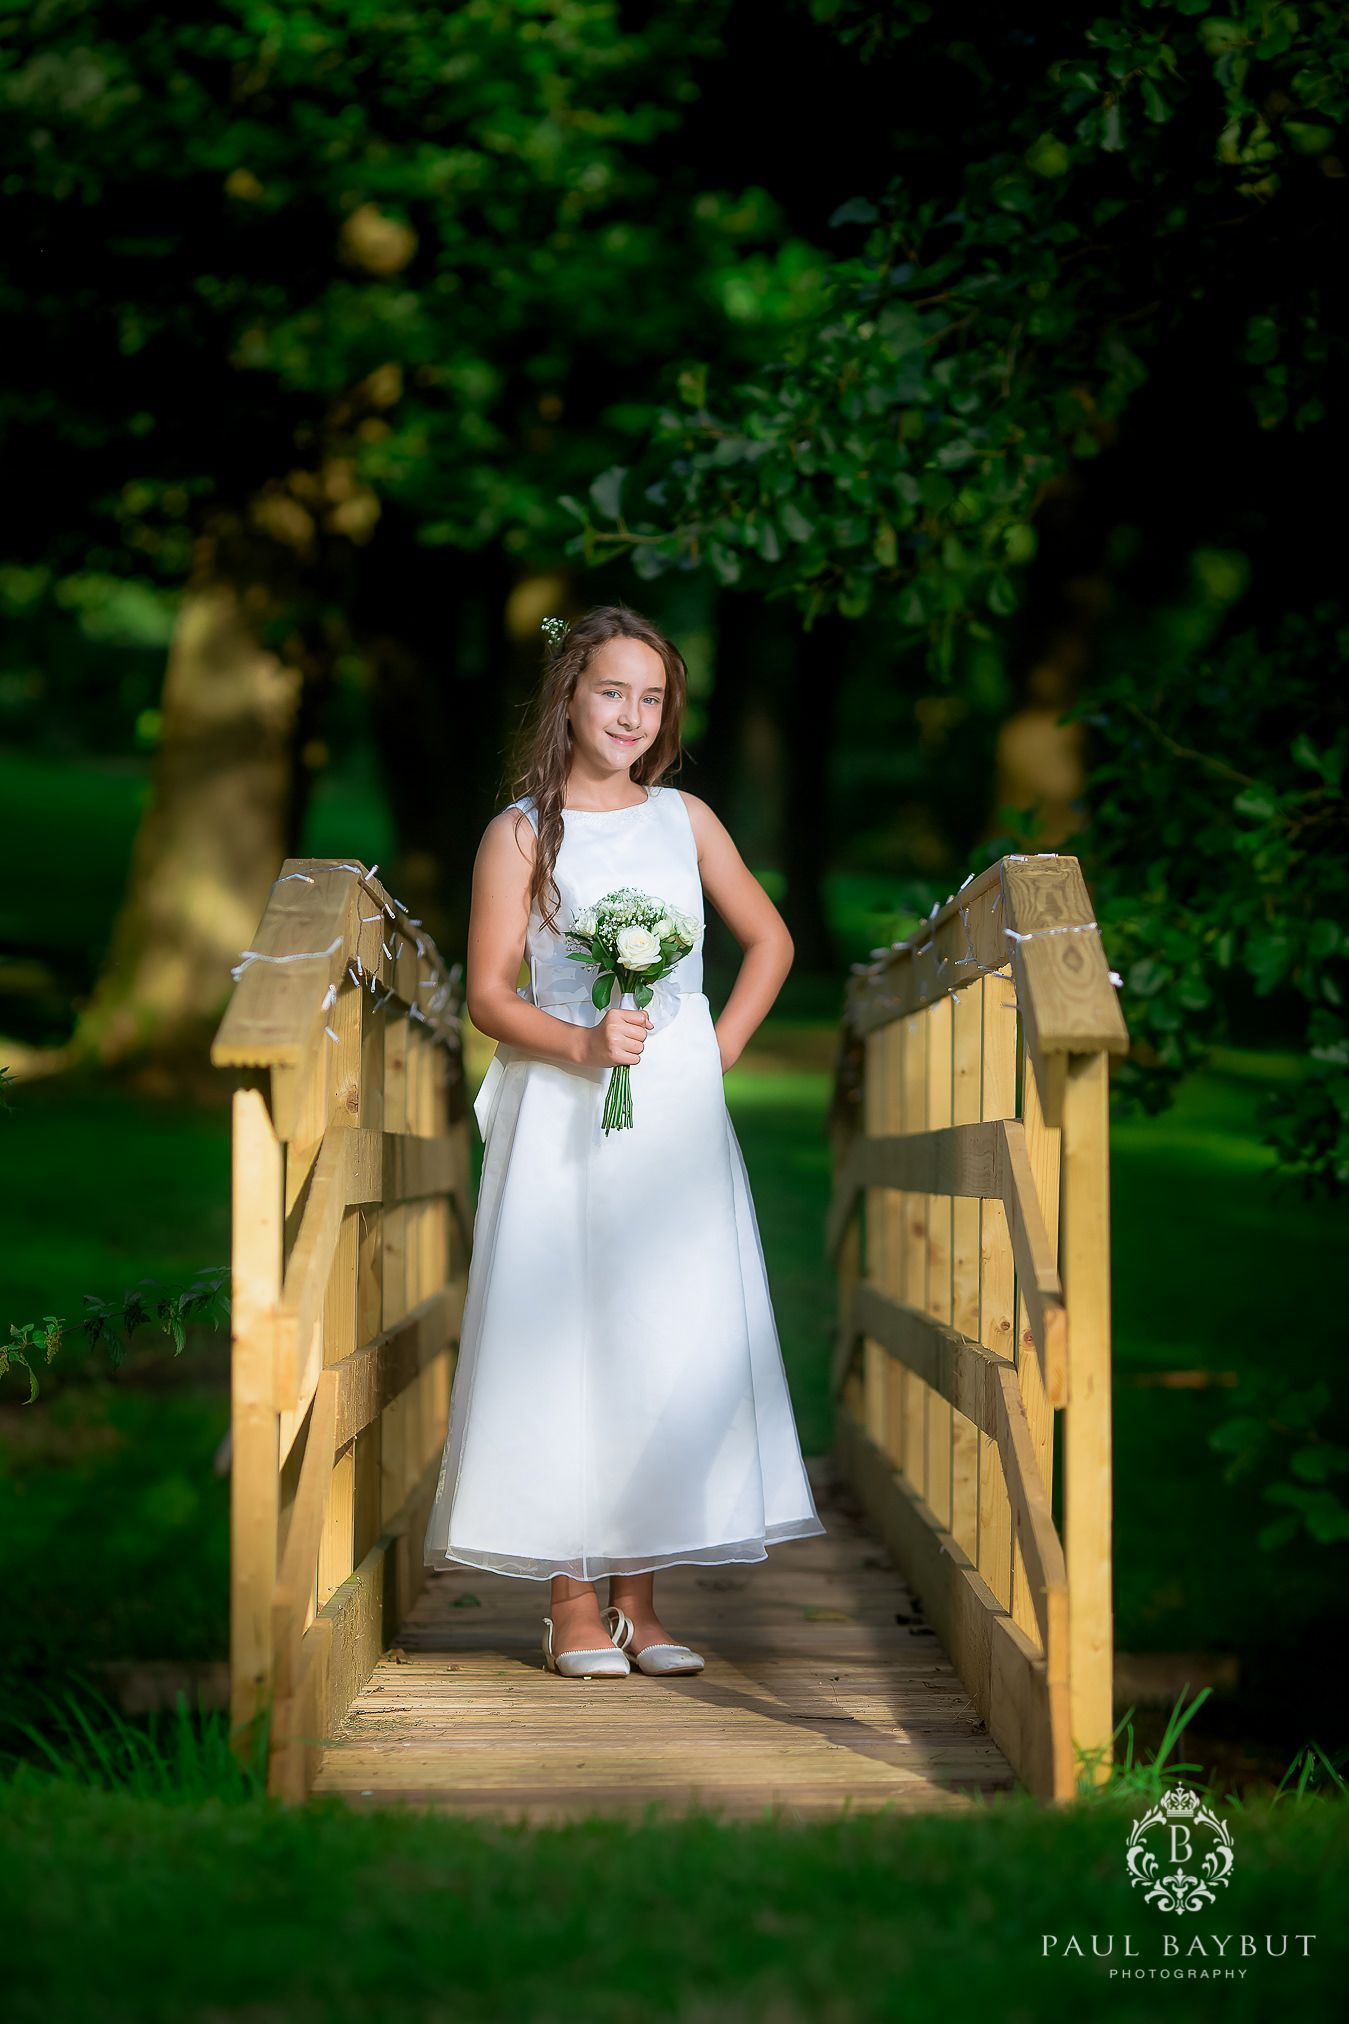 Young flower girl in white dress holding white flowers stood on a wooden bridge in the garden at a Cheshire wedding